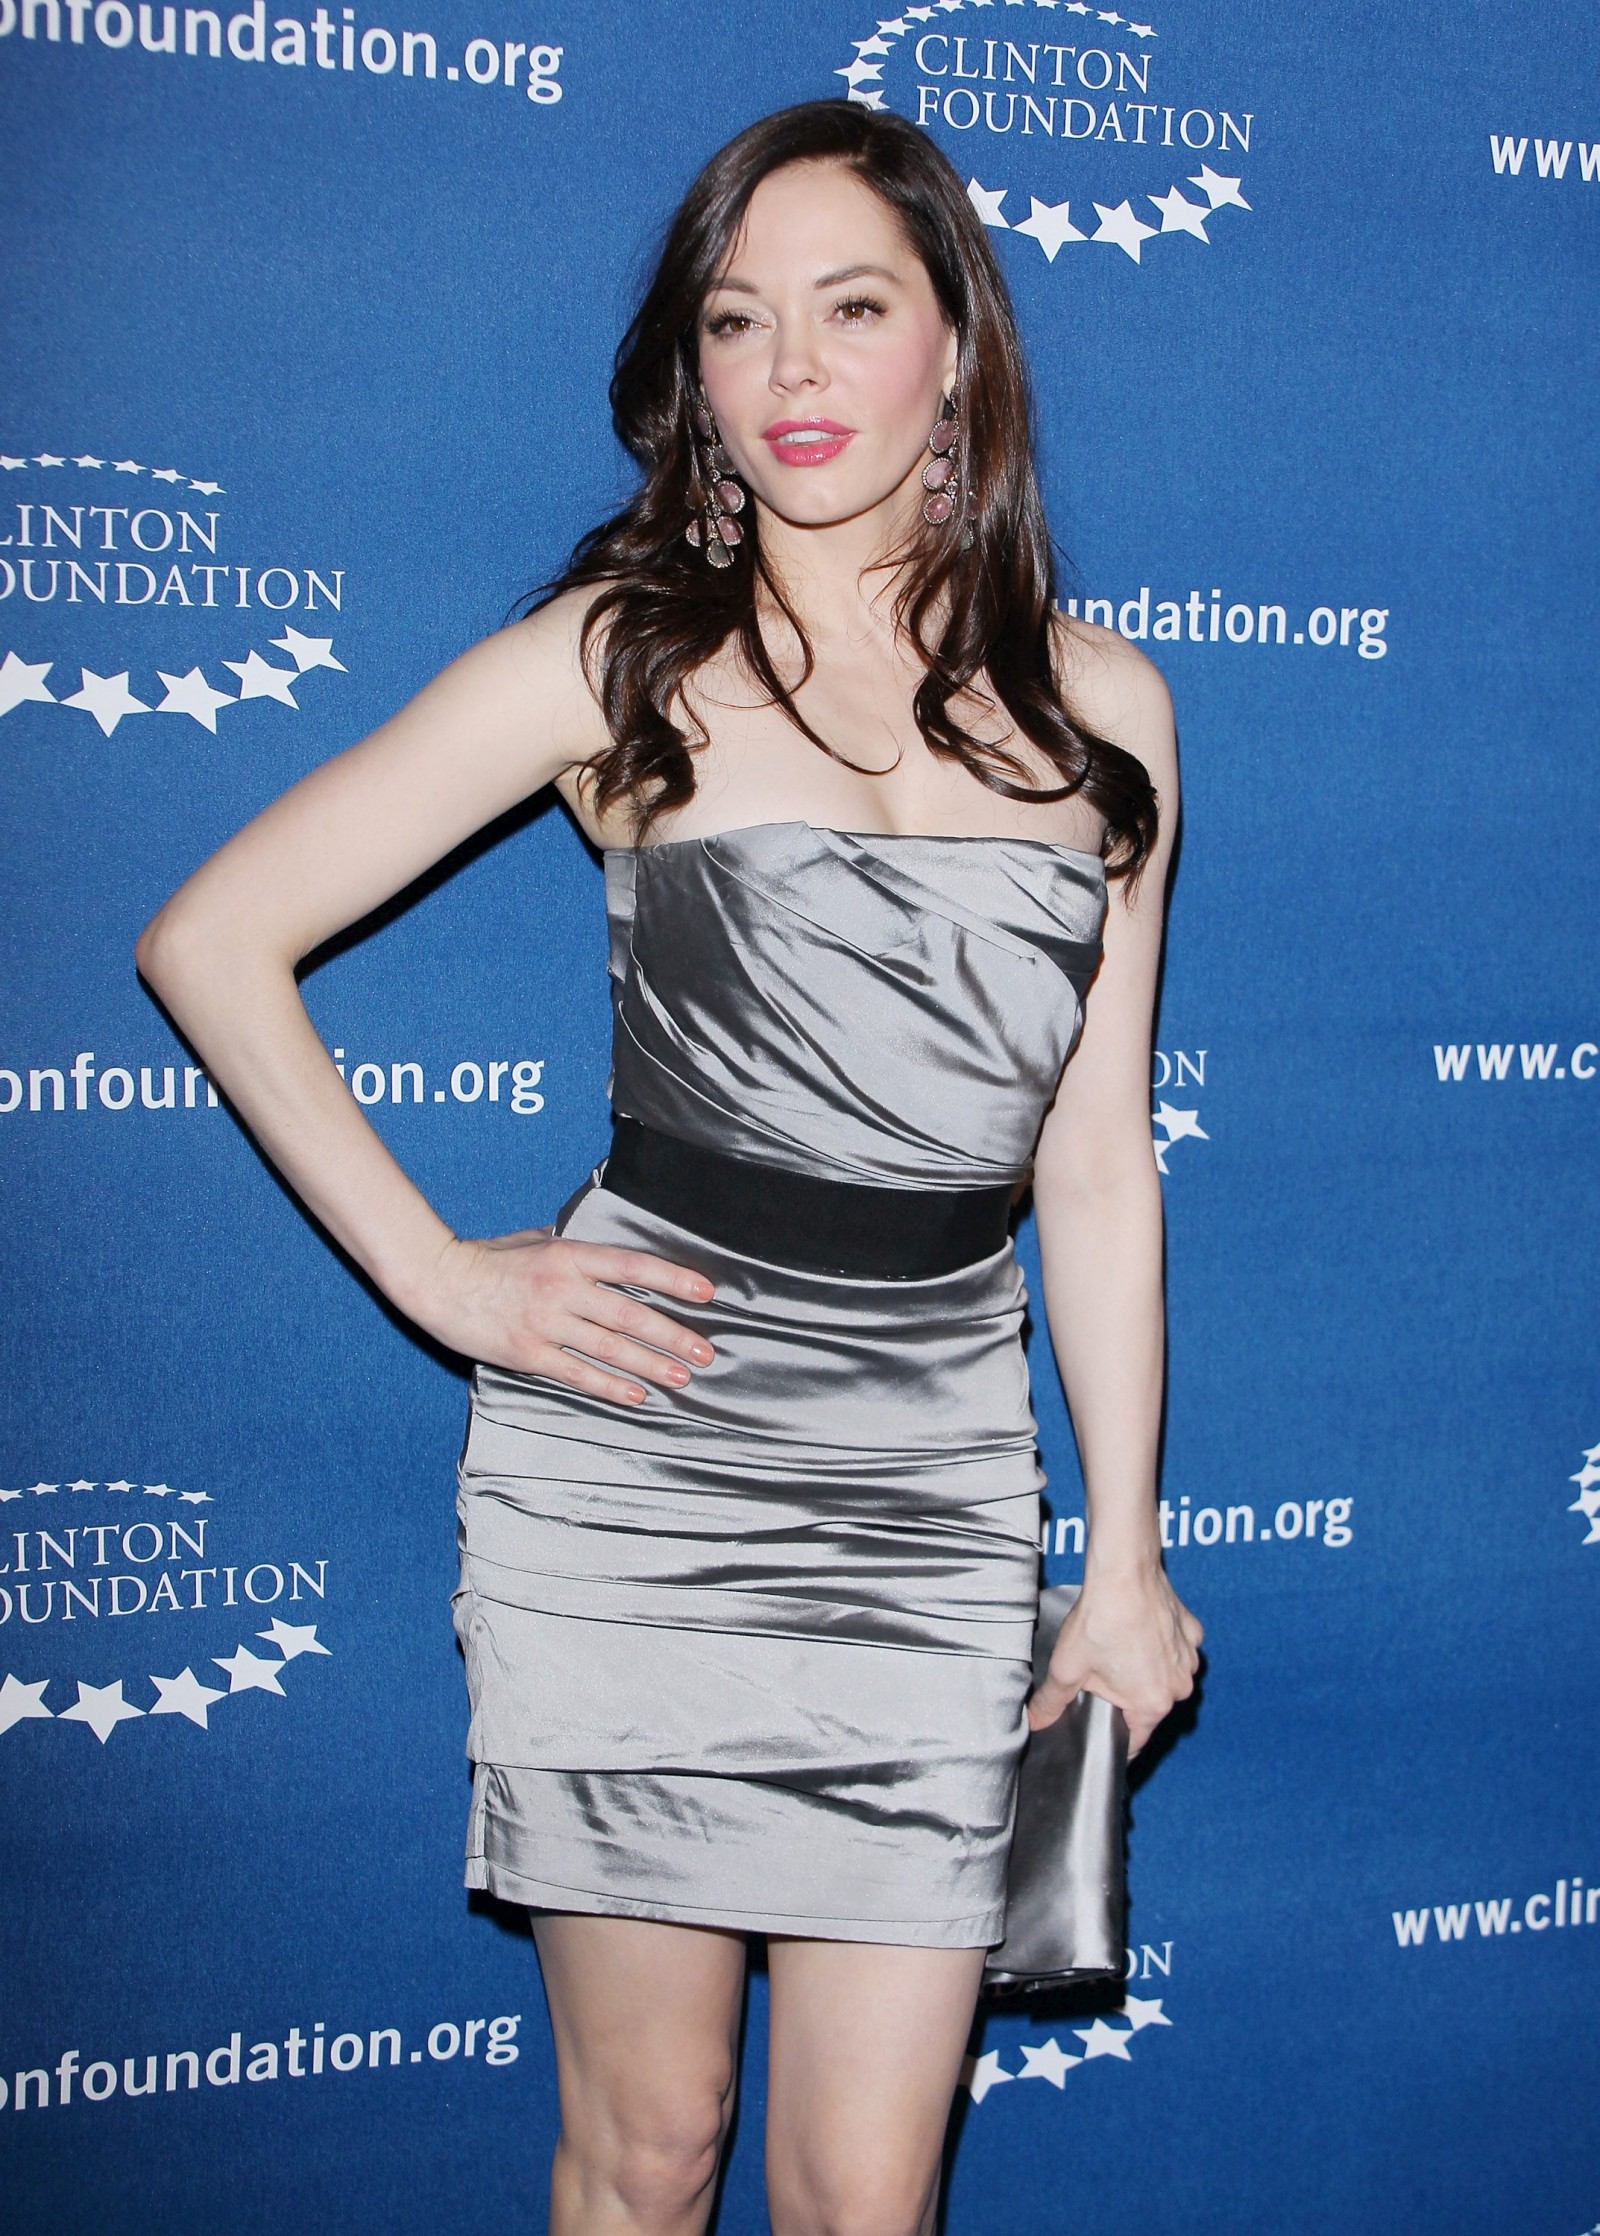 751808223_Rose_McGowan_Millennium_Network_Event_in_Hollywood_March_17_2011_04_122_421lo.jpg